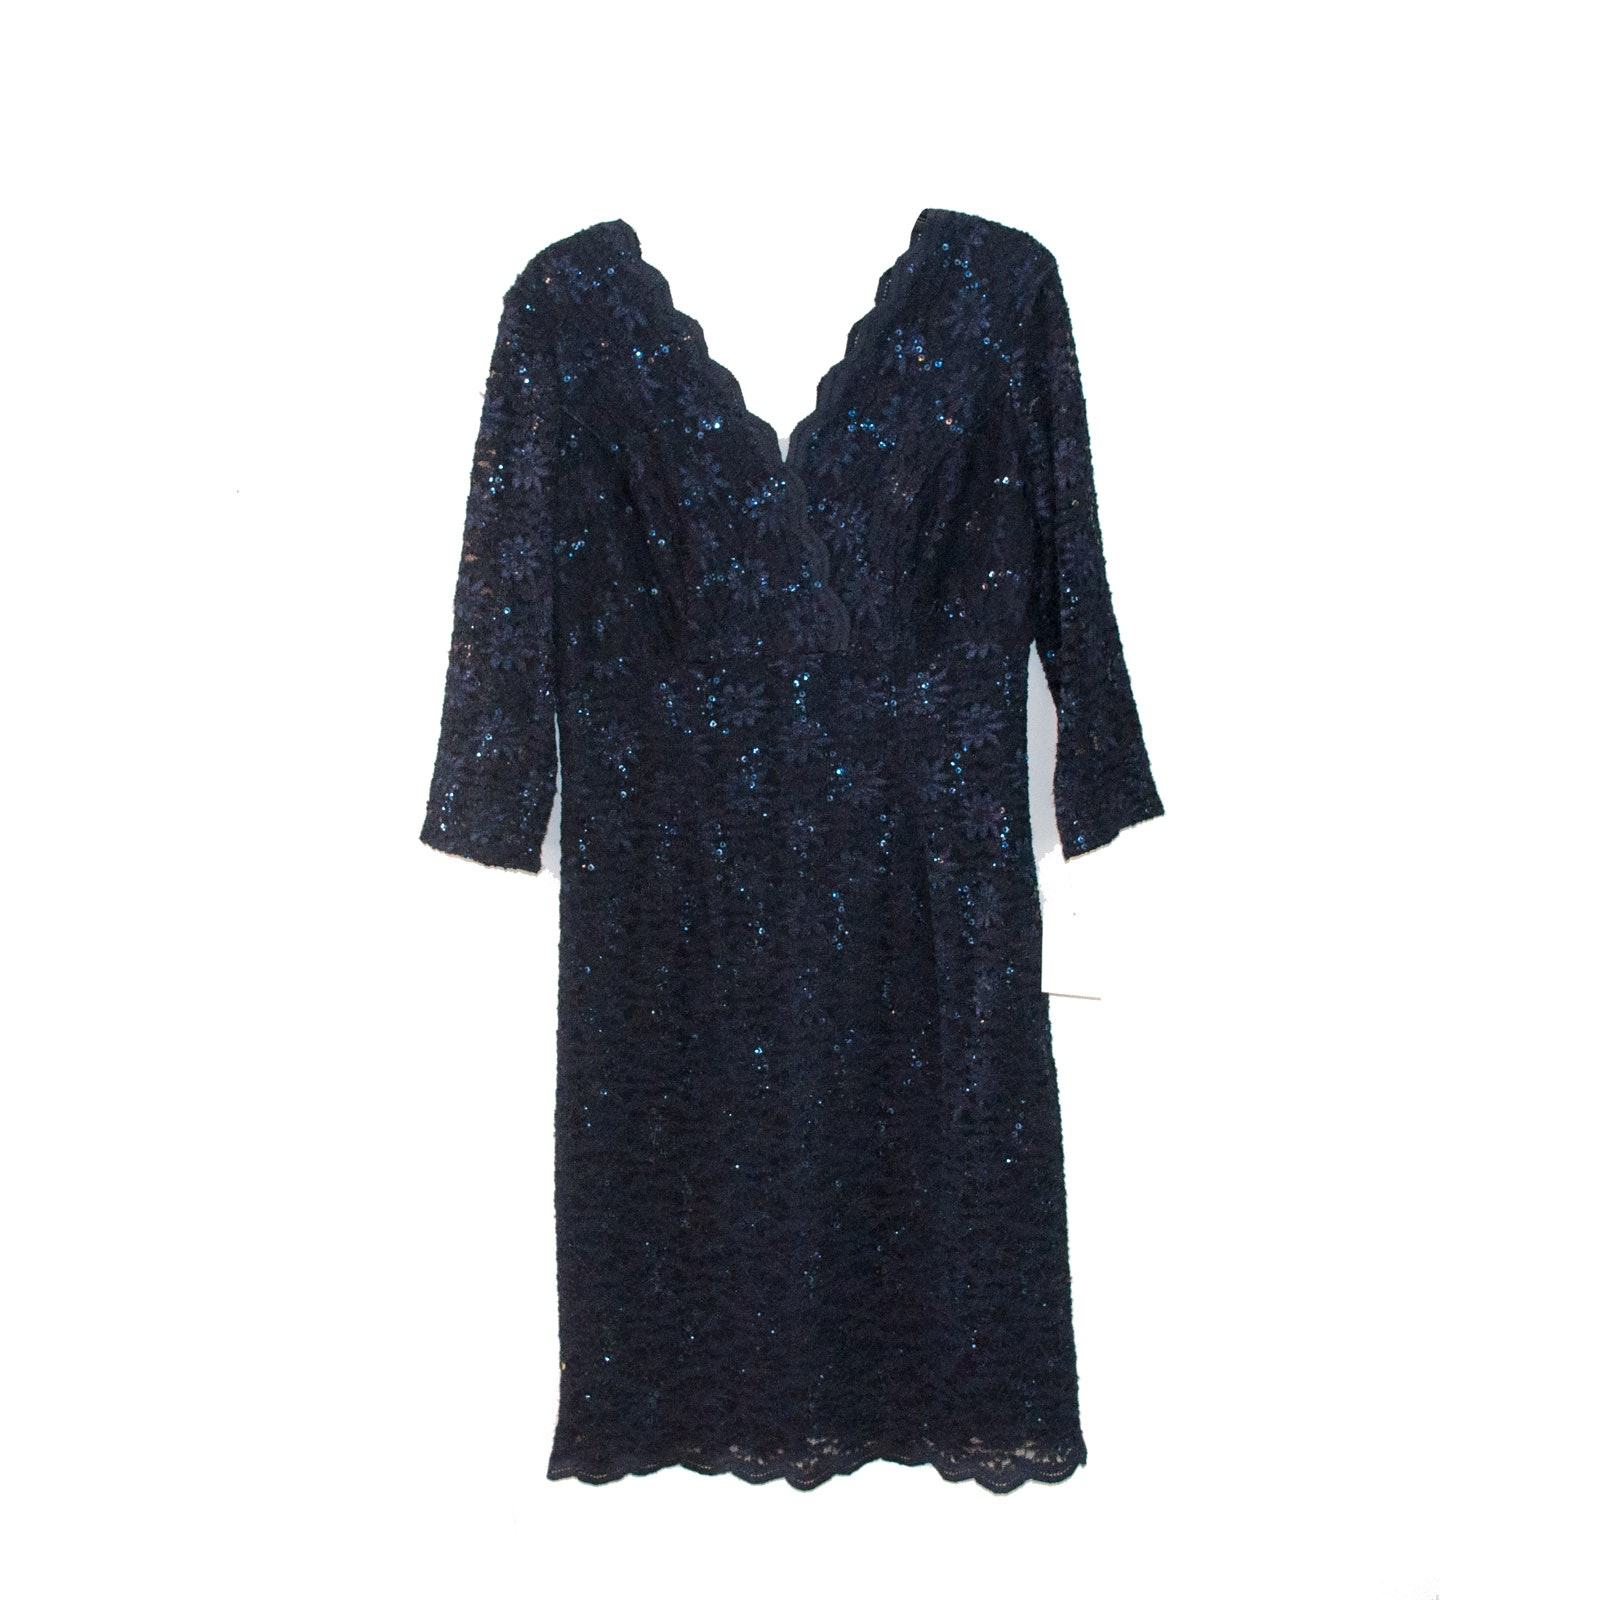 Alex Evenings Navy Blue Lace and Sequin Dress